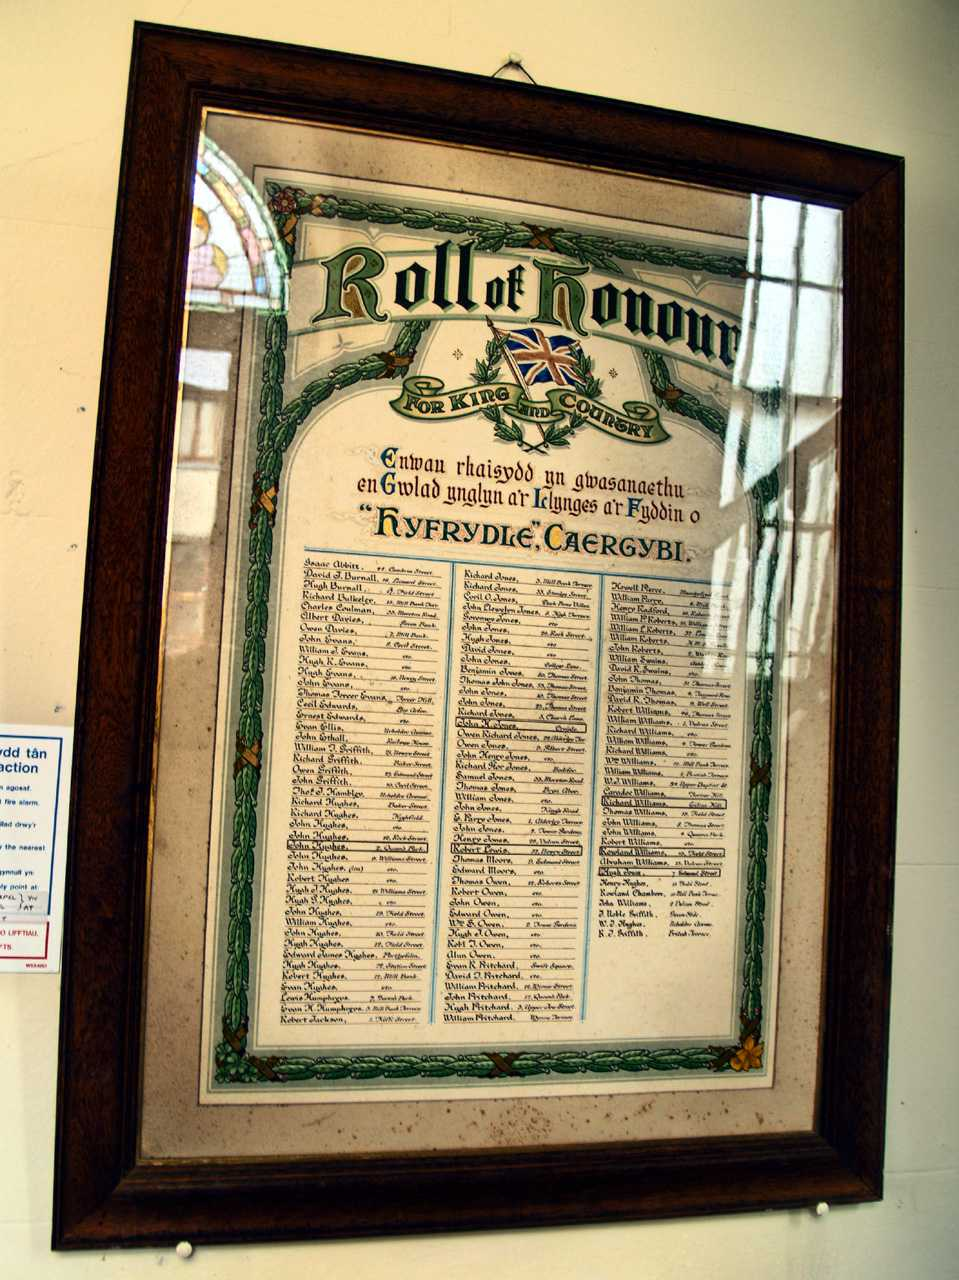 Holyhead, Hyfrydle Chapel Roll of Honour